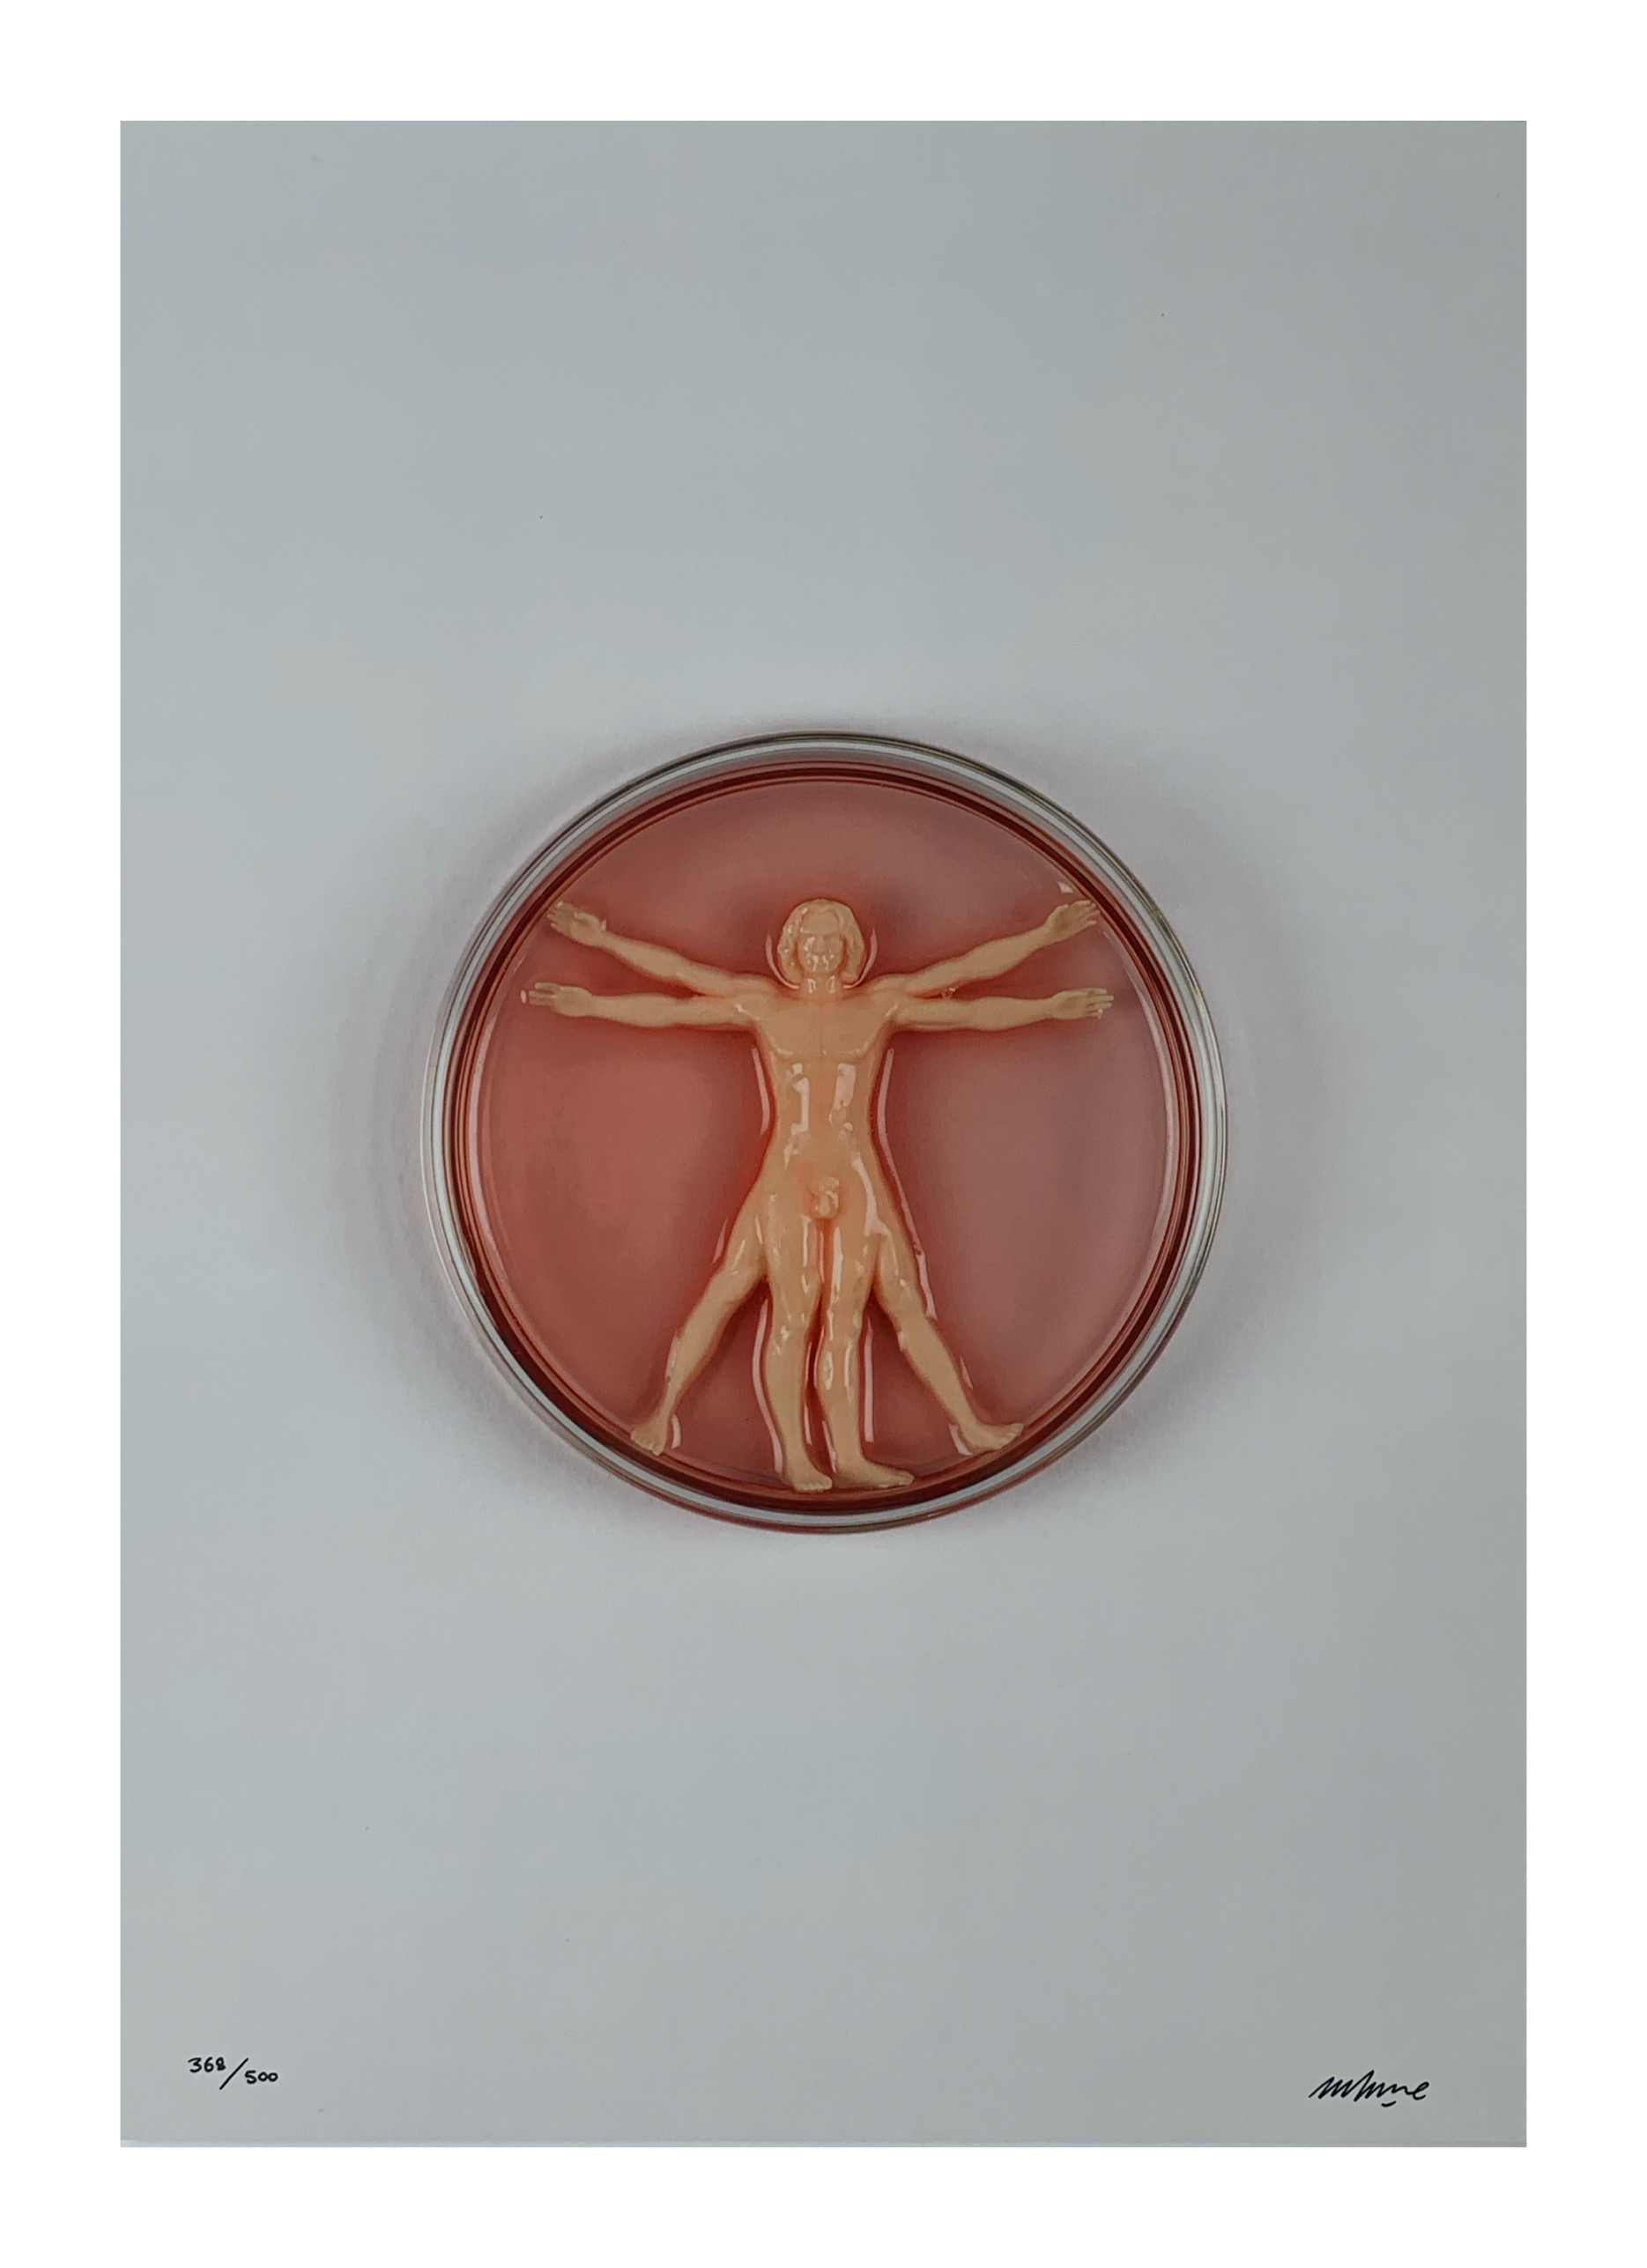 IMBUE 'VITRUVIAN MAN-MADE' - 2020